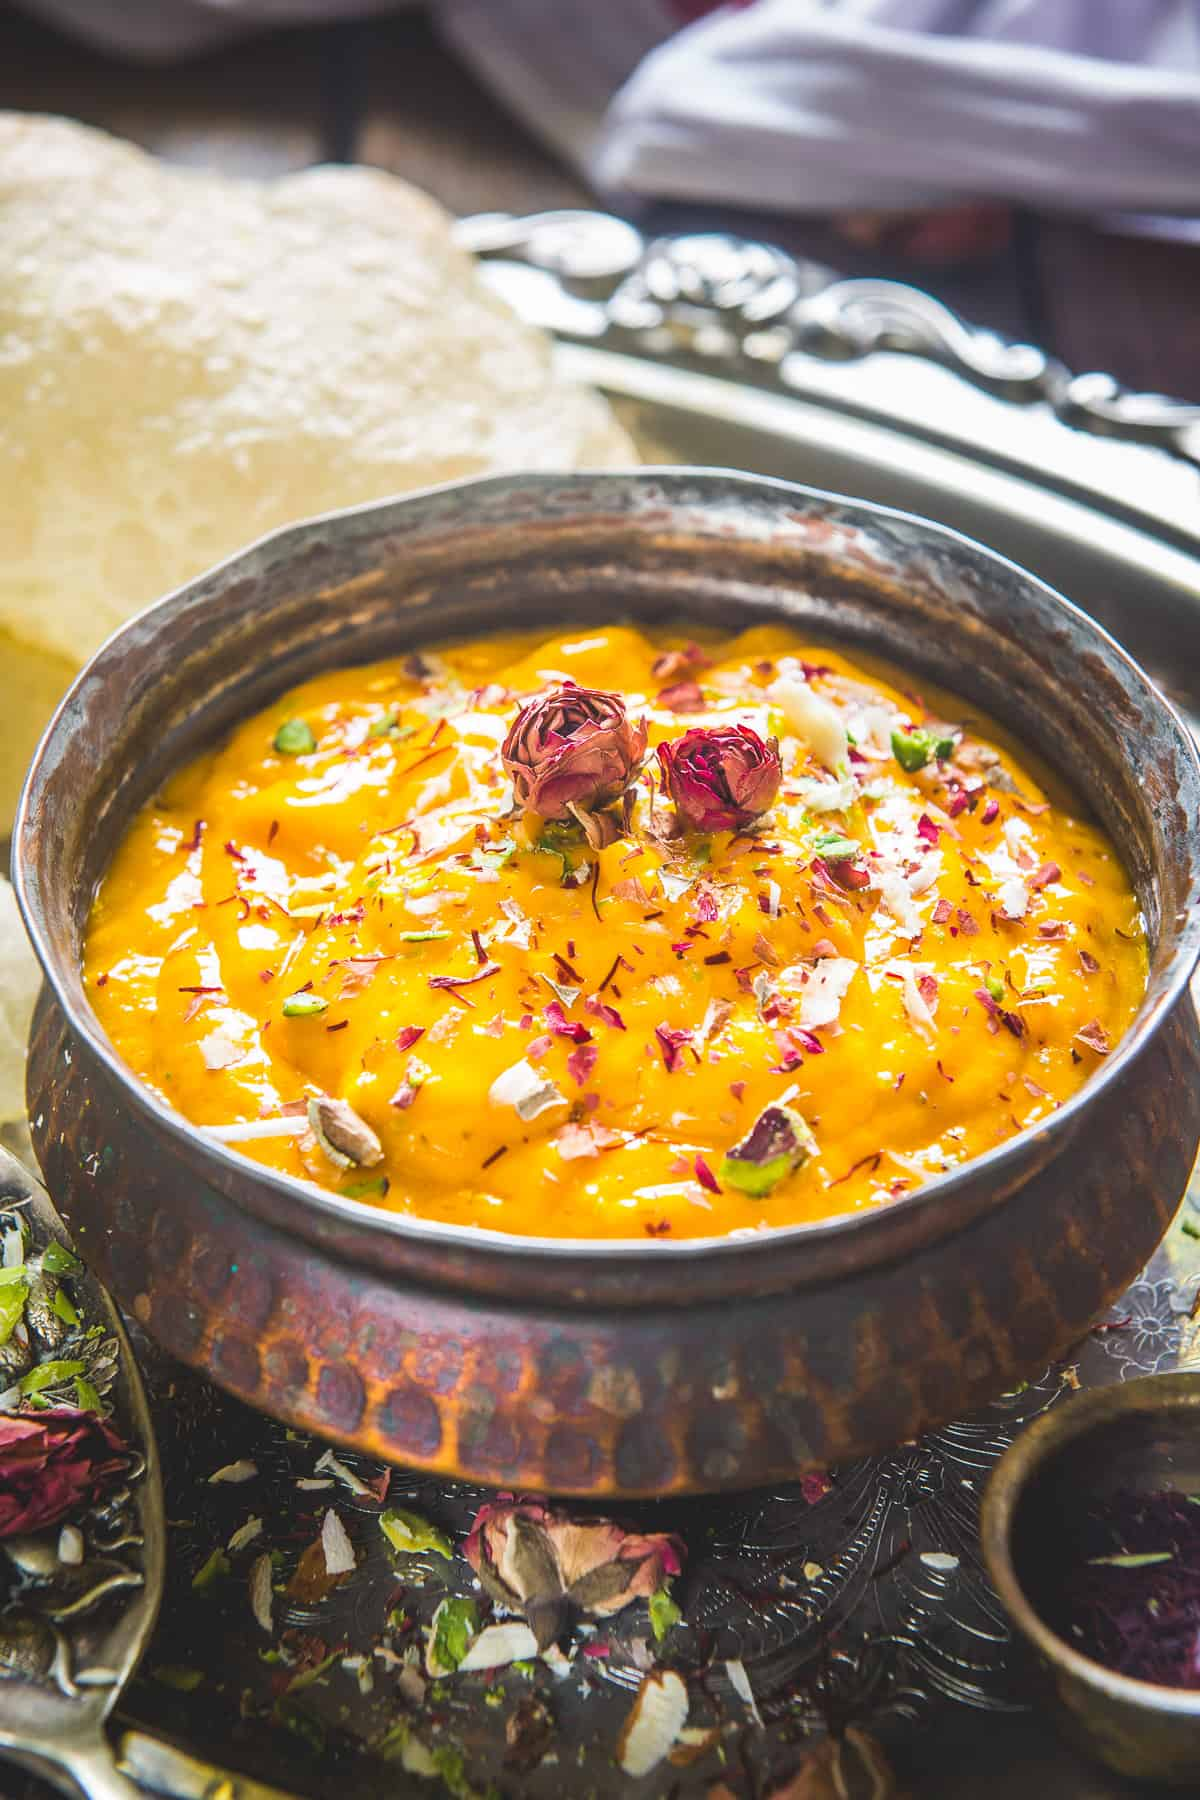 Aamras served in a bowl.